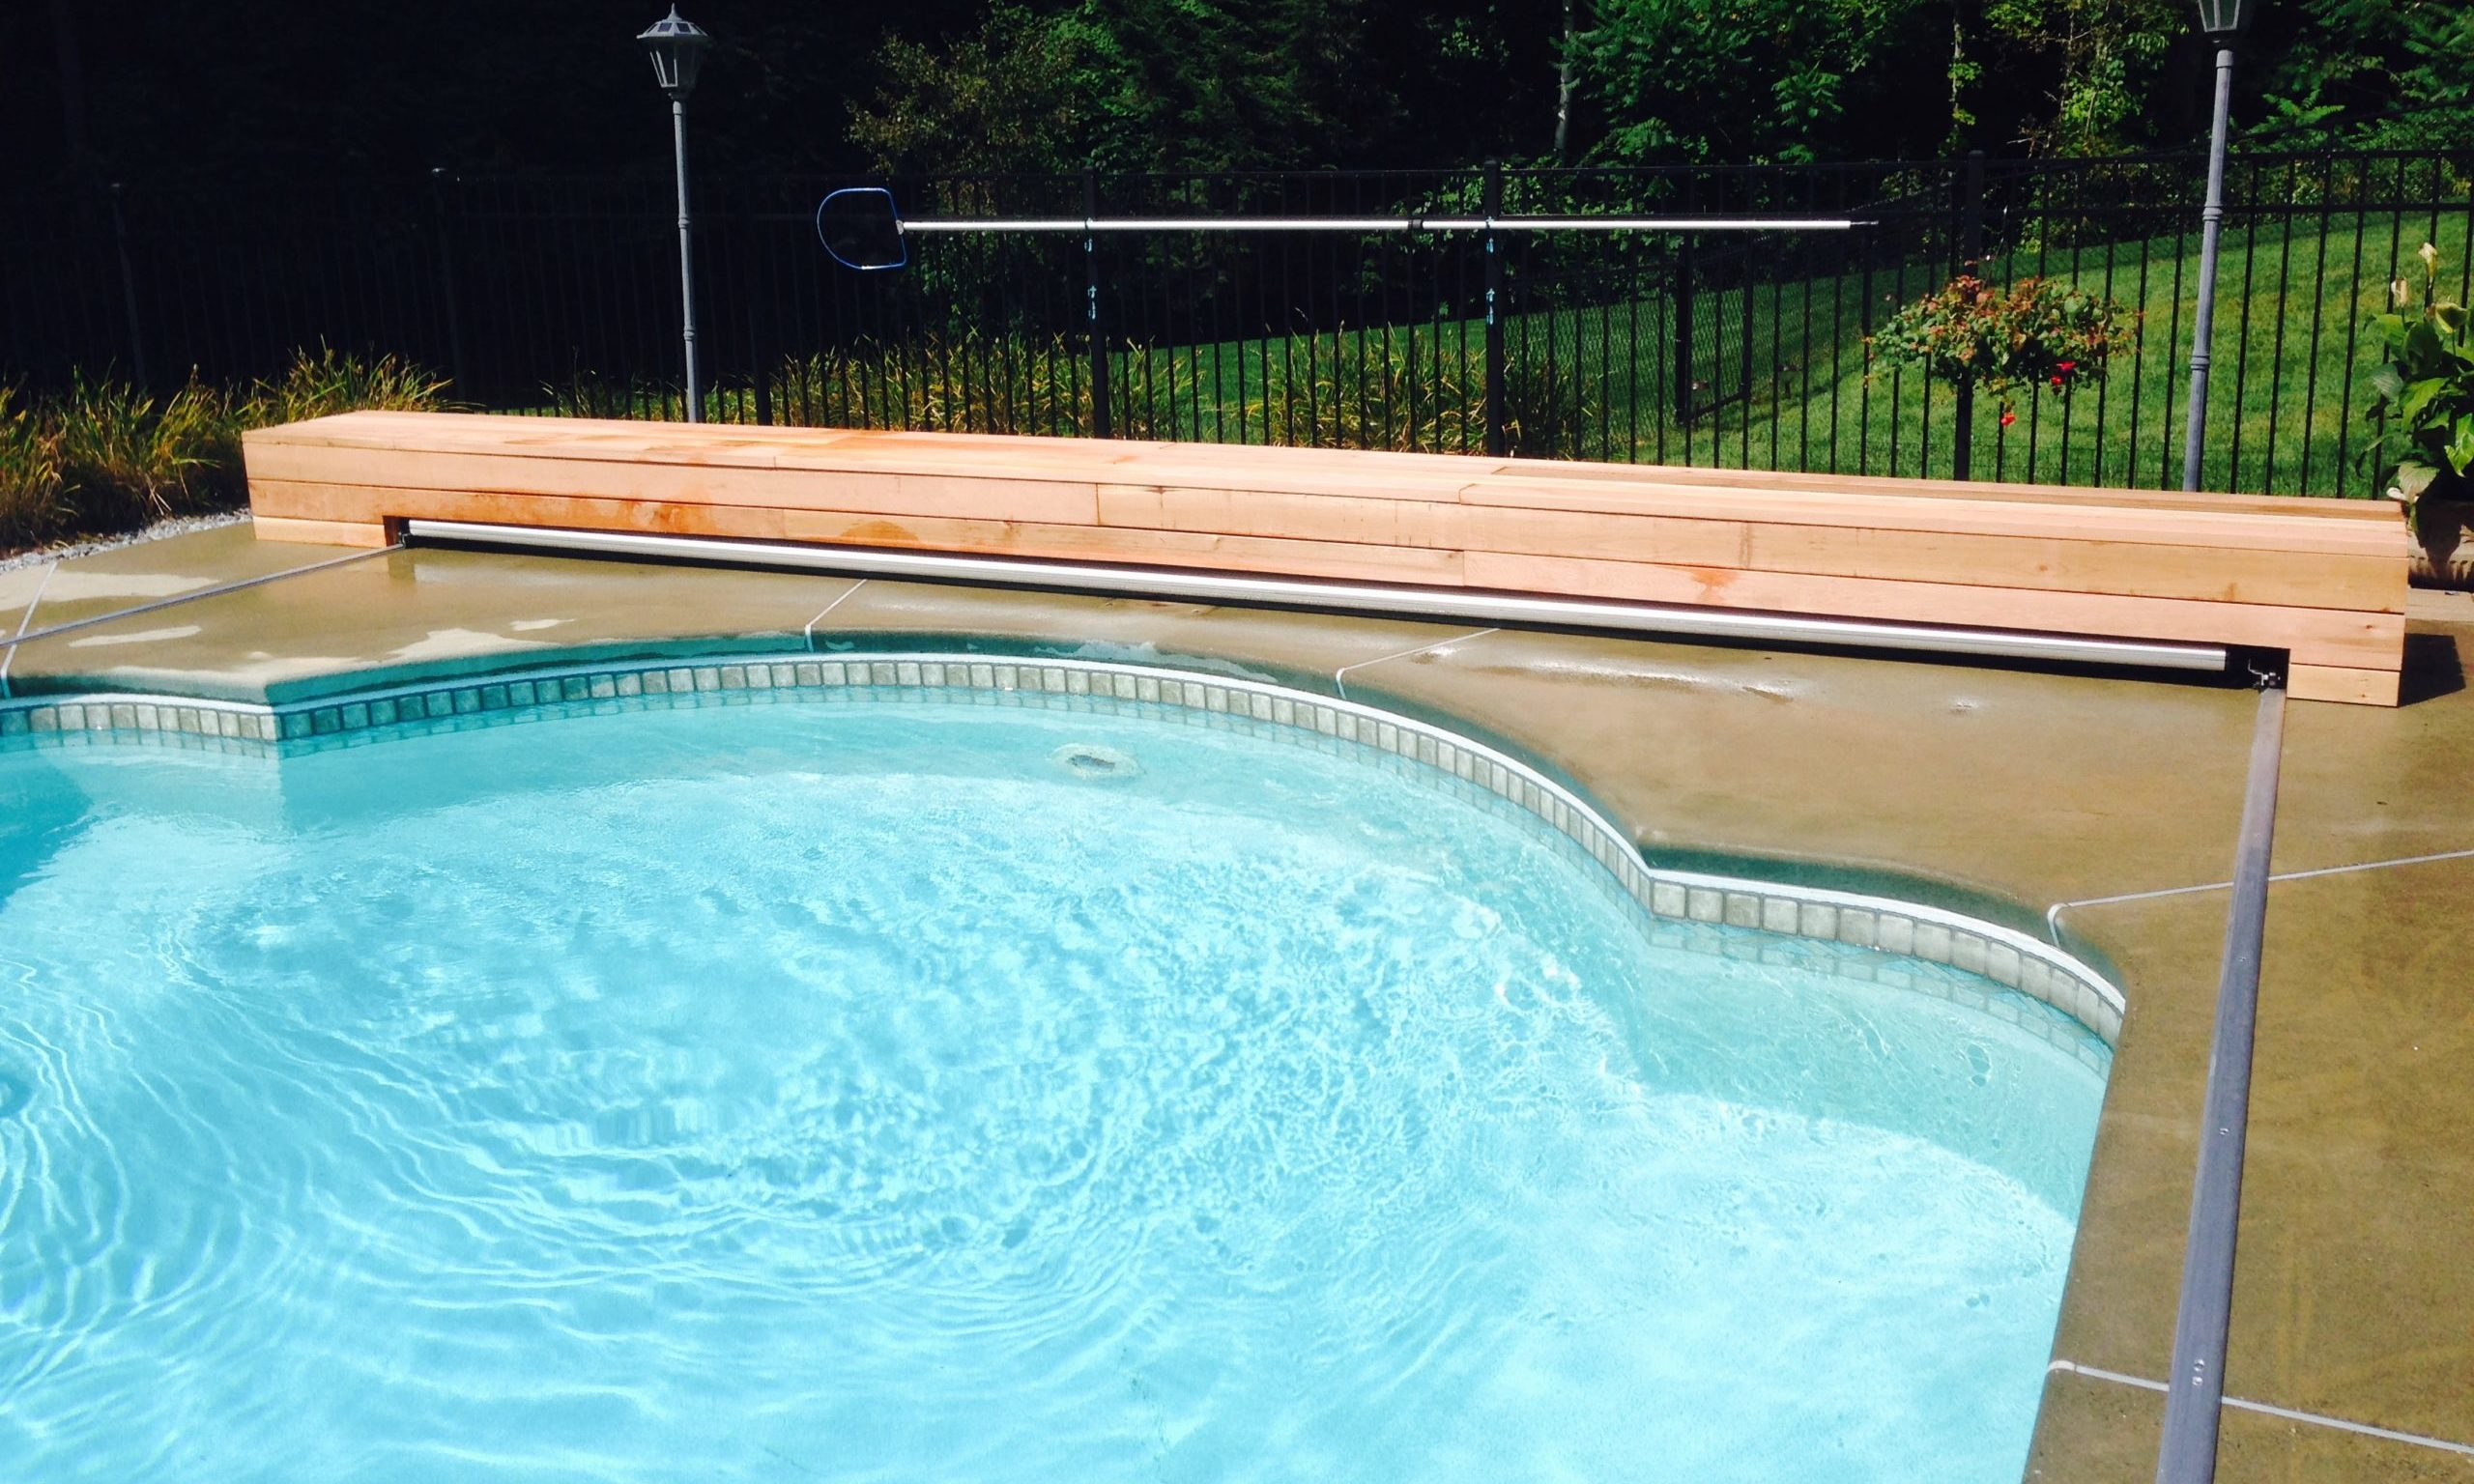 Deck mounted and top track automatic pool cover